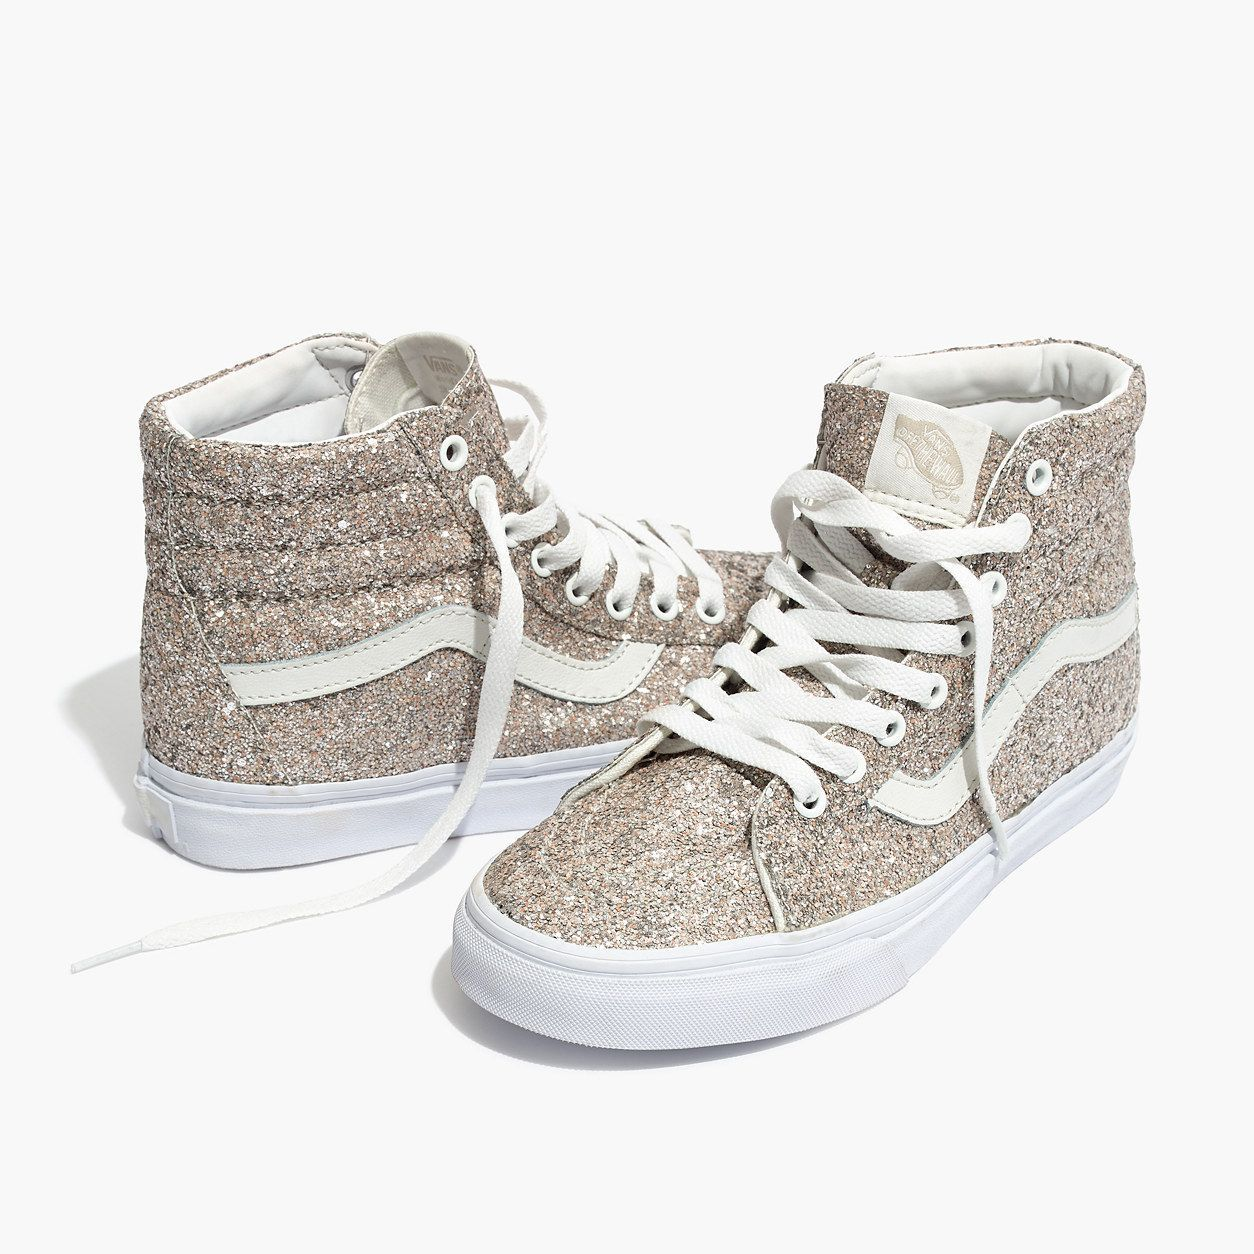 ff7131da61 Madewell Womens Vans Unisex Sk8-Hi High-Top Sneakers In Glitter ...